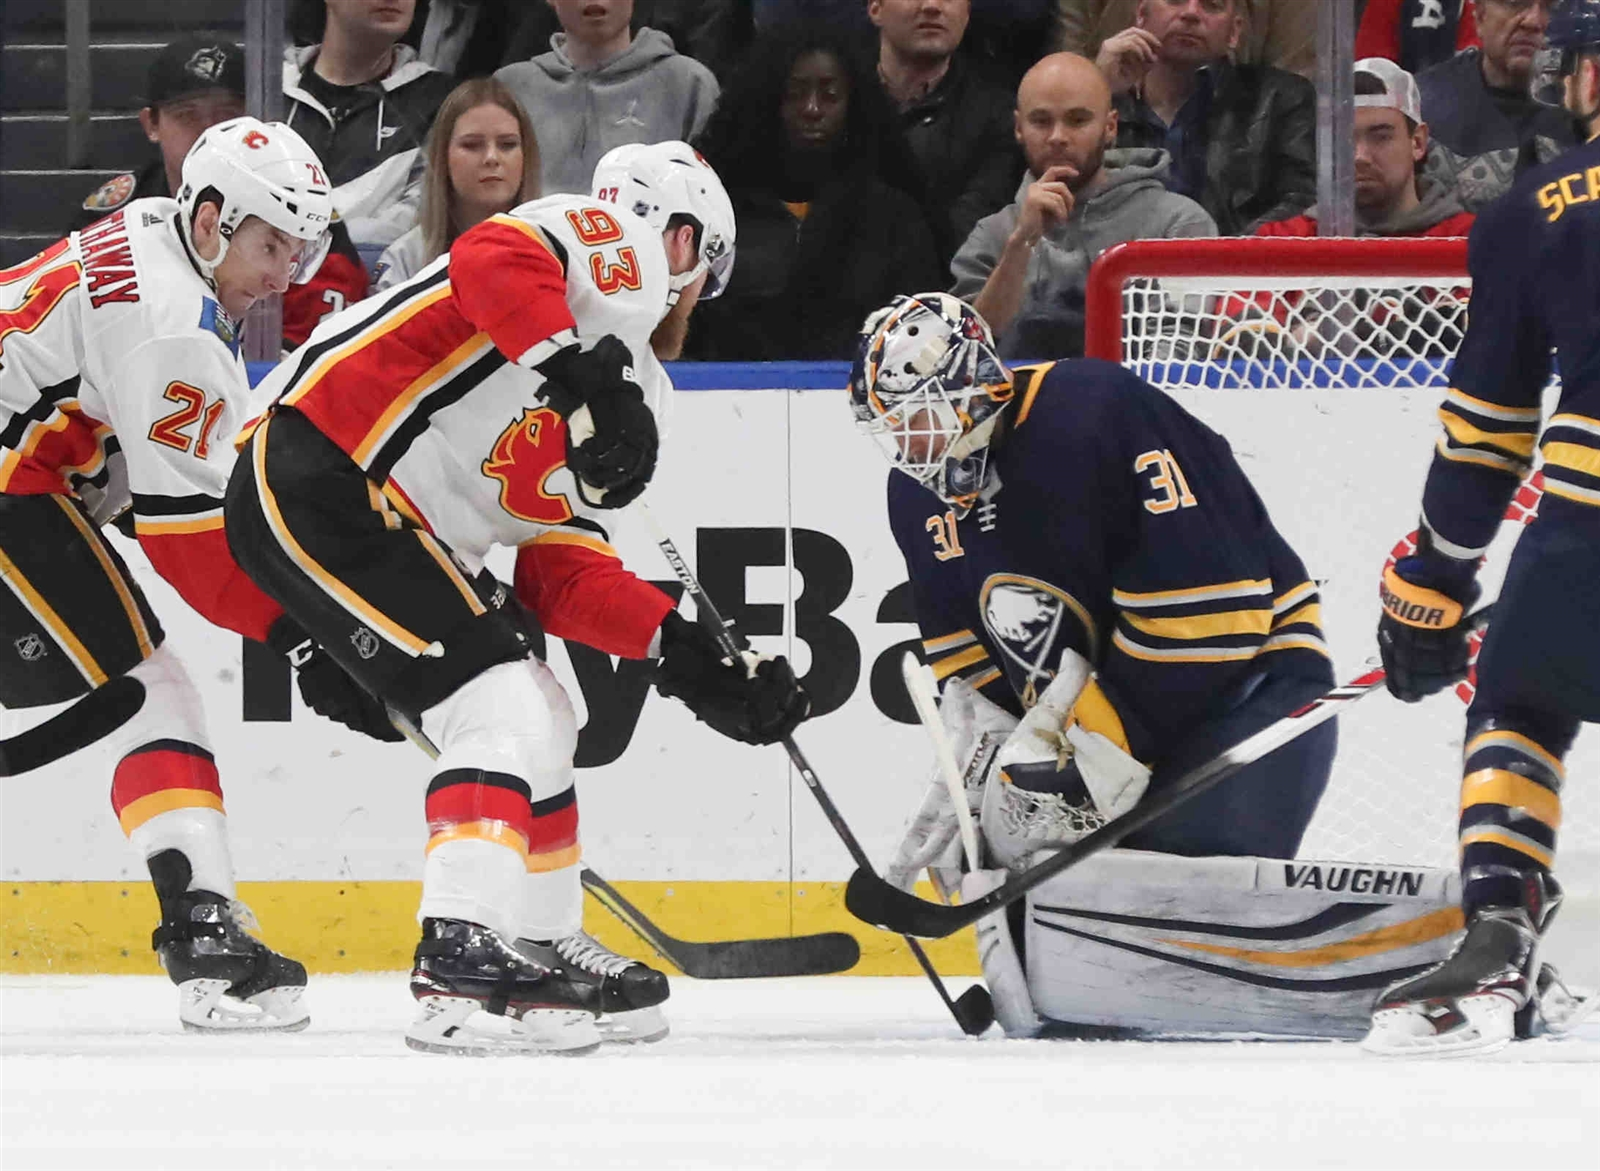 Calgary Flames center Sam Bennett (93) scores  goal against Buffalo Sabres goaltender Chad Johnson (31) in the first period.